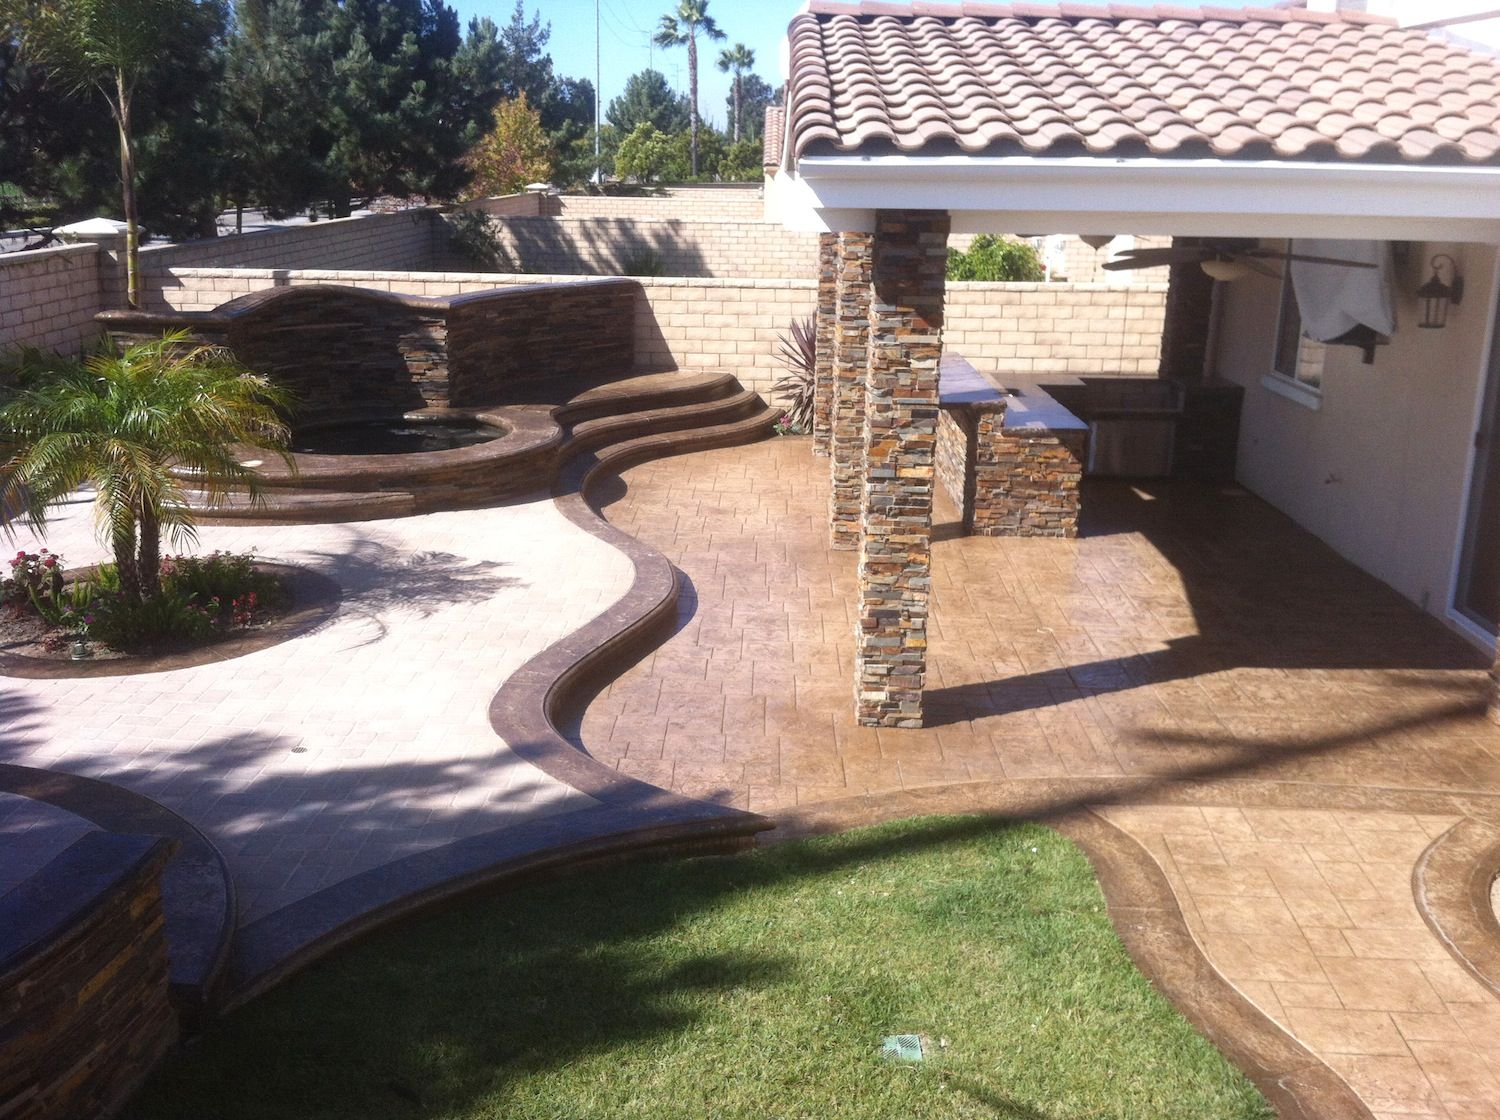 Spa; Waterfall; Outdoor kitchen; Stamped concrete; pavers ...